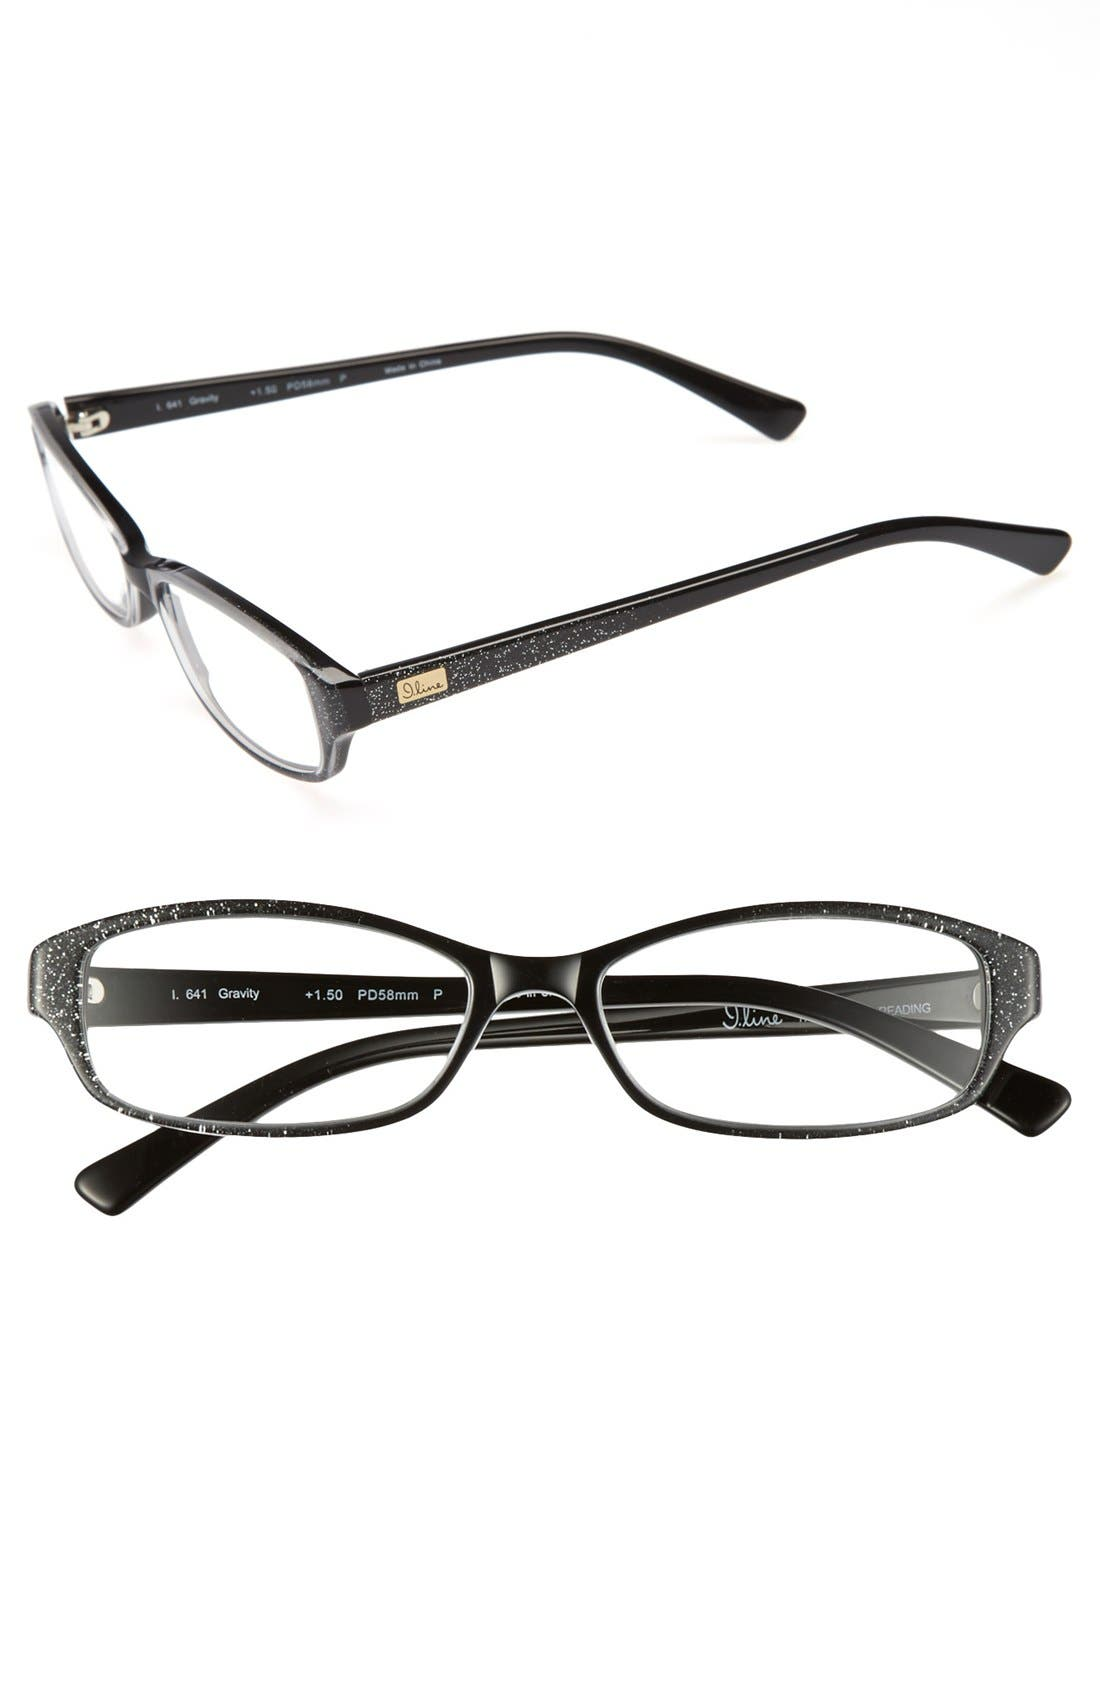 Alternate Image 1 Selected - I Line Eyewear 'Gravity' 58mm Reading Glasses (2 for $88)